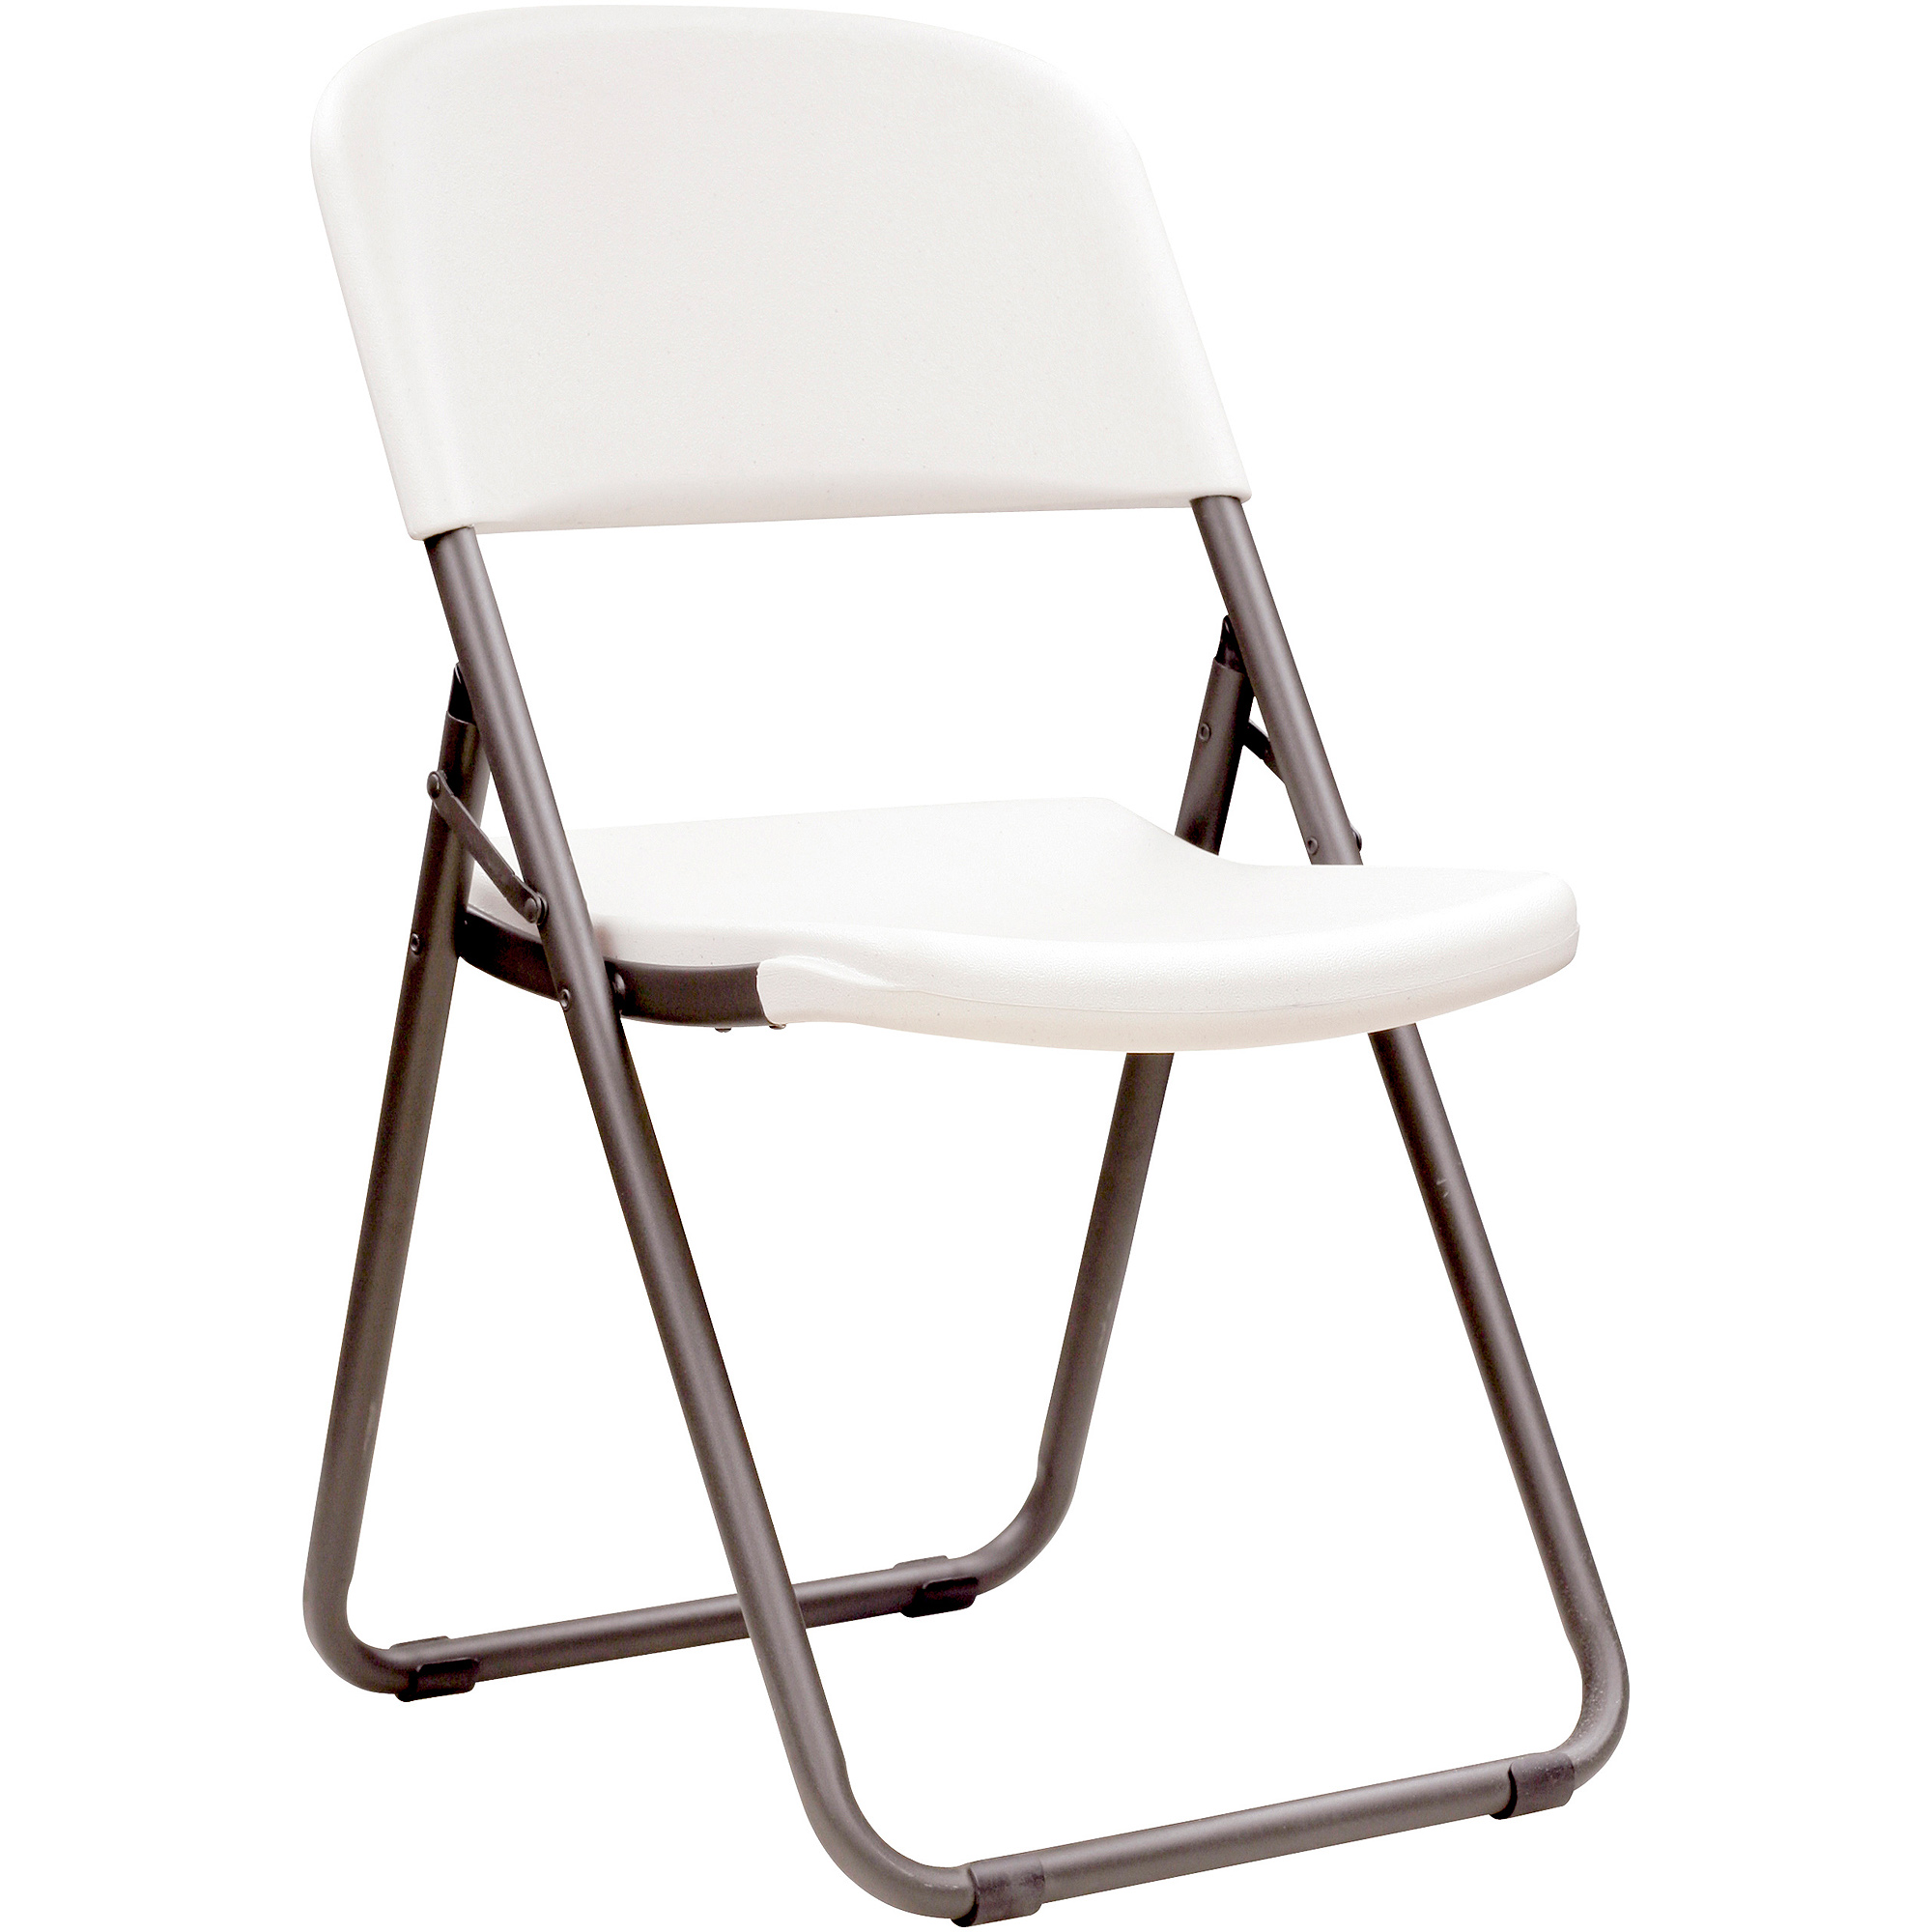 Lifetime Loop Leg Folding Chair, Set Of 4, White Granite, 80155    Walmart.com